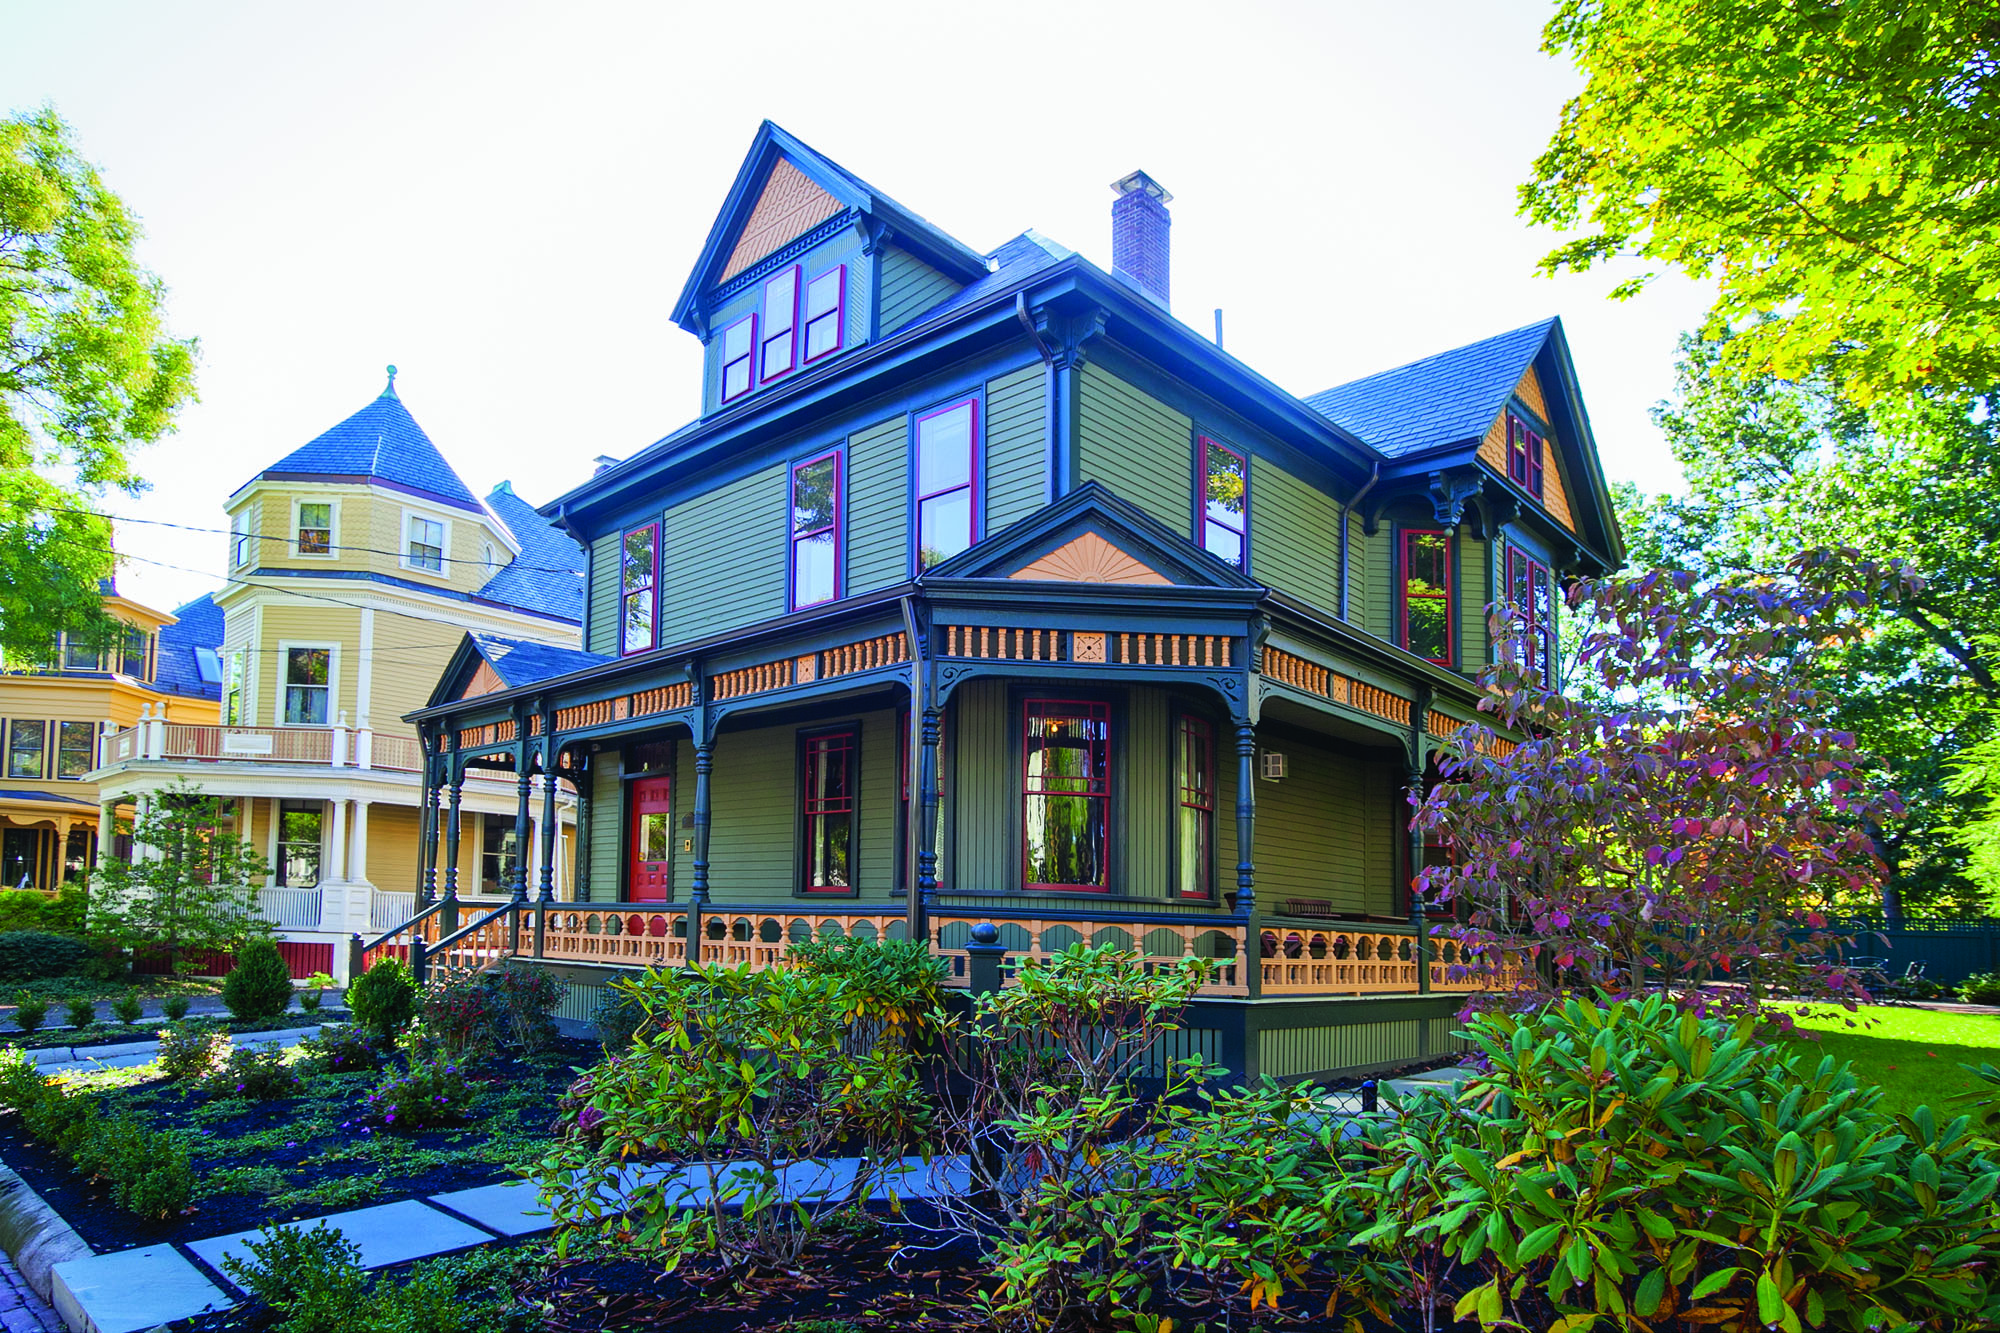 The homeowner worked with the local historical commission to determine the original paint colors.